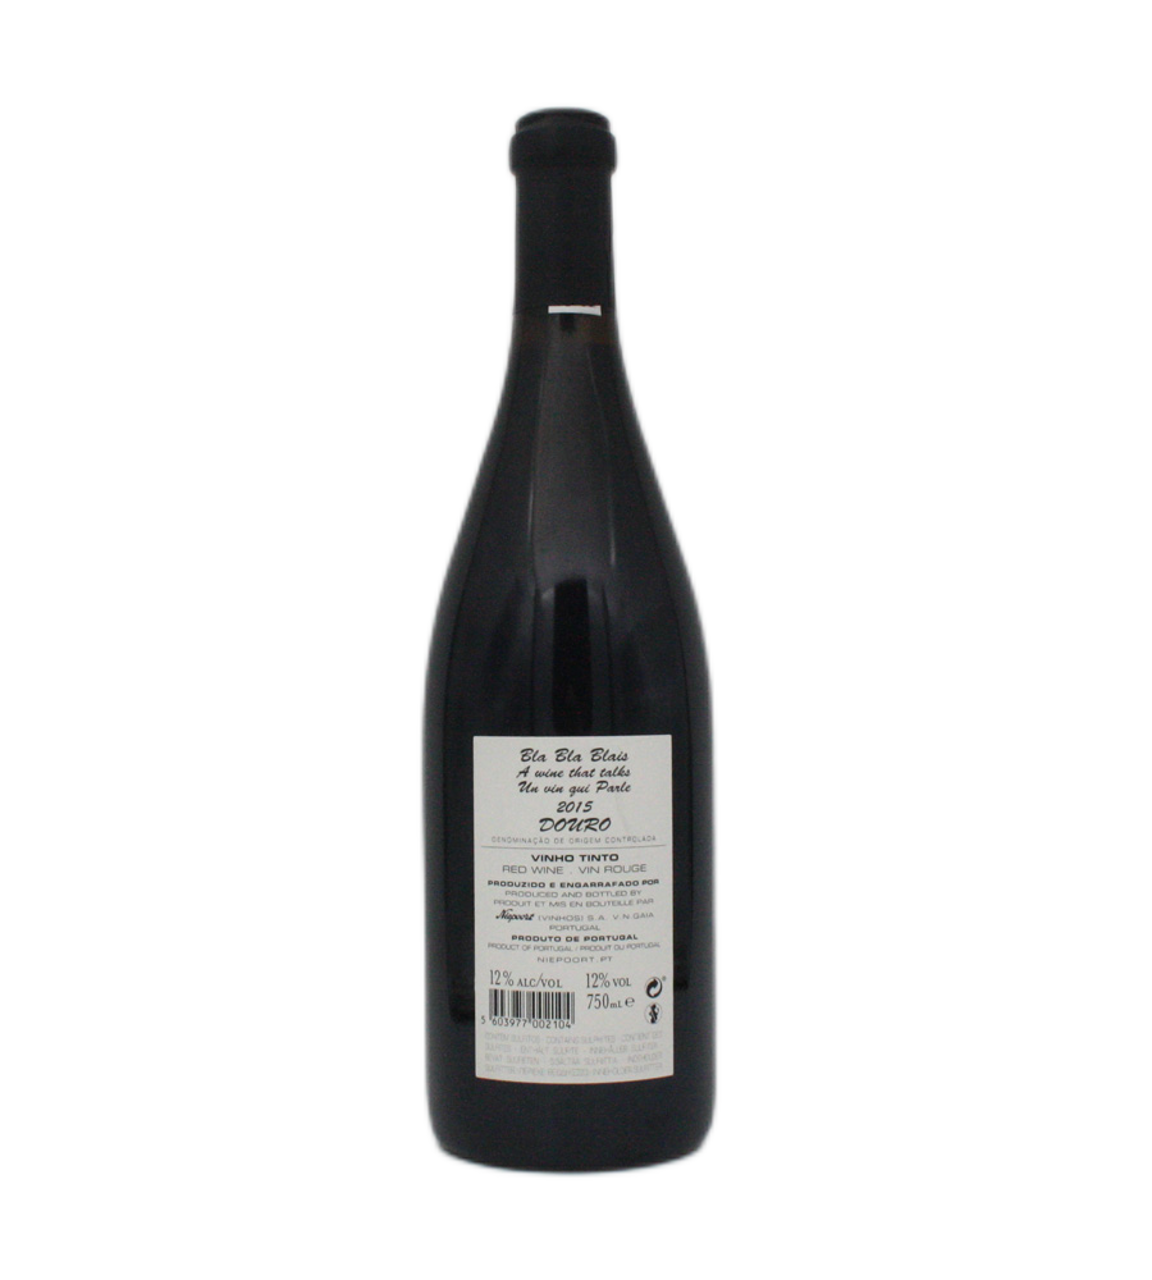 Niepoort Bla Bla Blais Tinto 2015 Niepoort Bla Bla Blais Red 2015